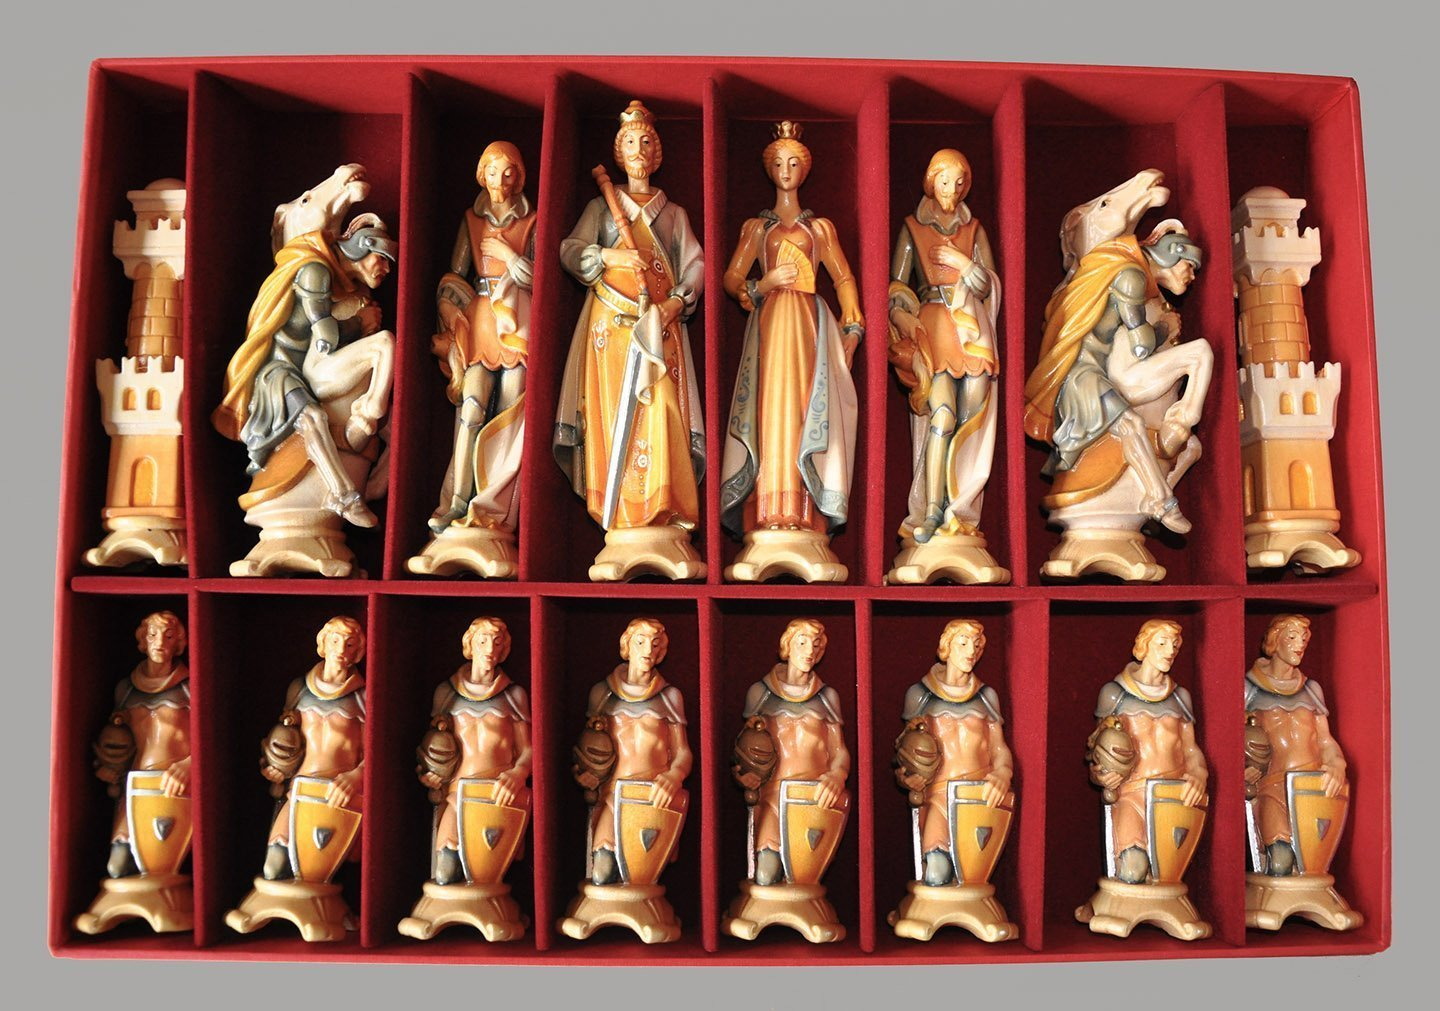 Marvelous Gardena Art Pyrenees Chessmen